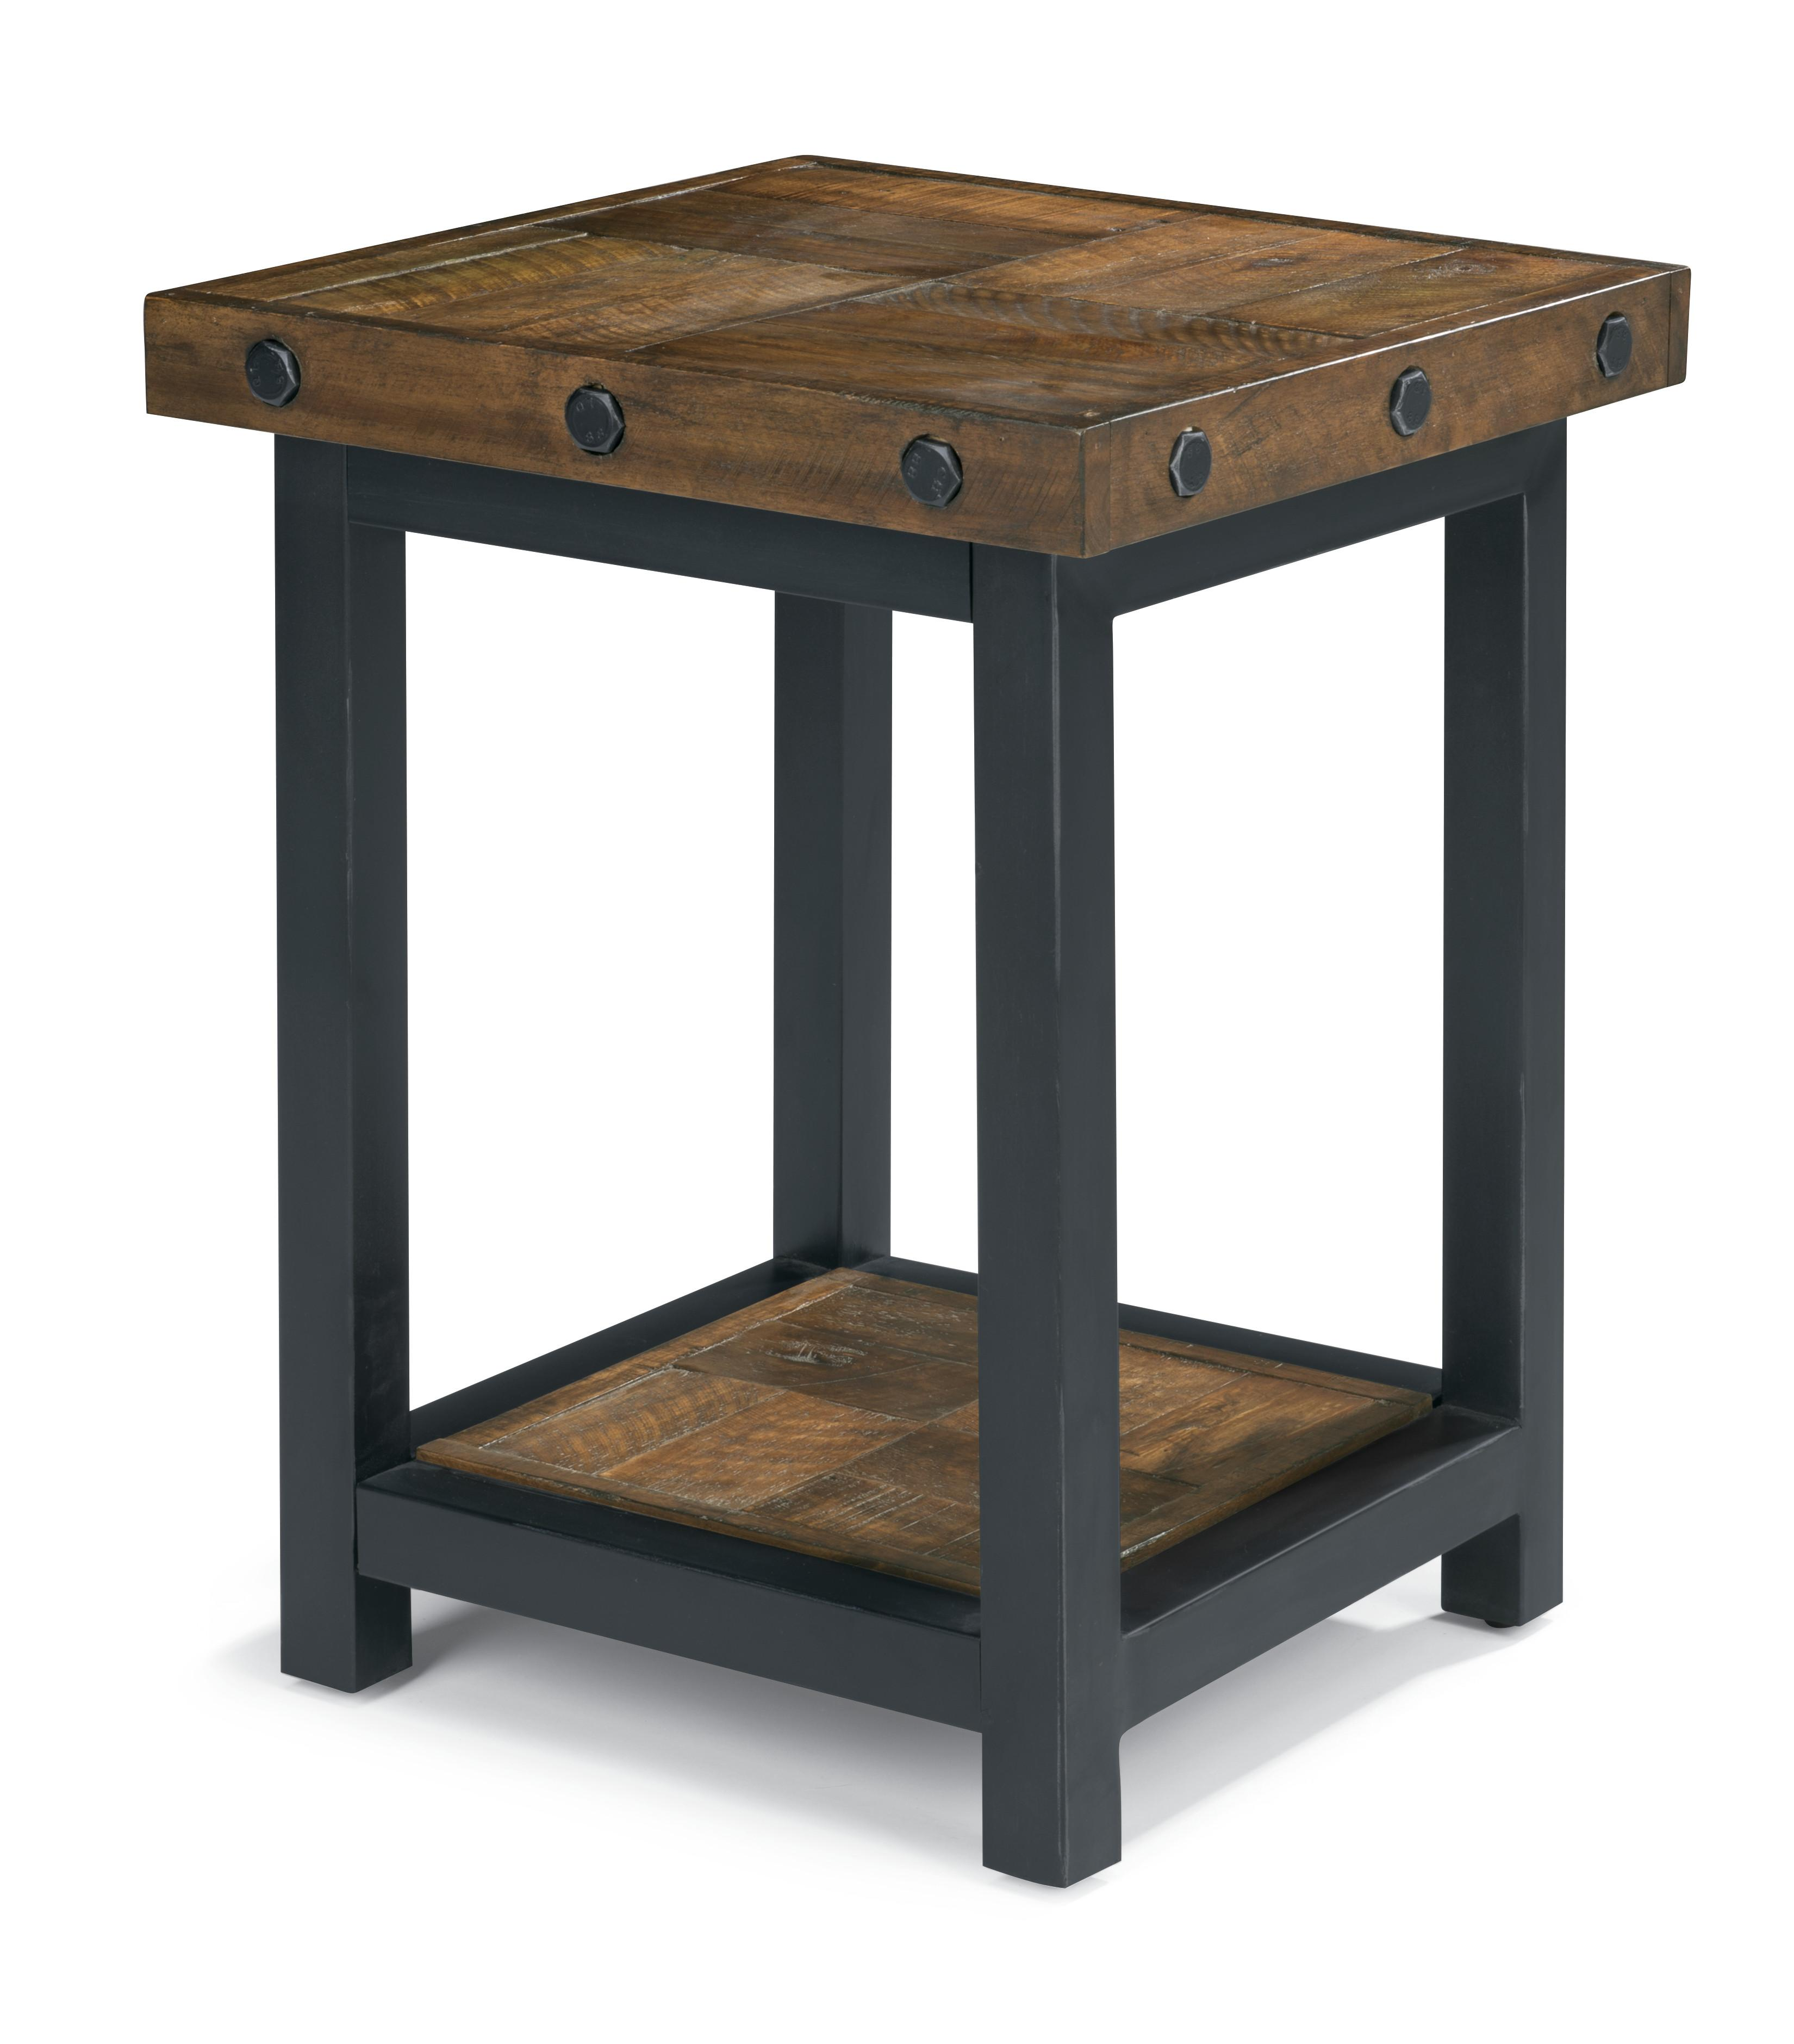 Carpenter Chair Side Table by Flexsteel Wynwood Collection at Northeast Factory Direct